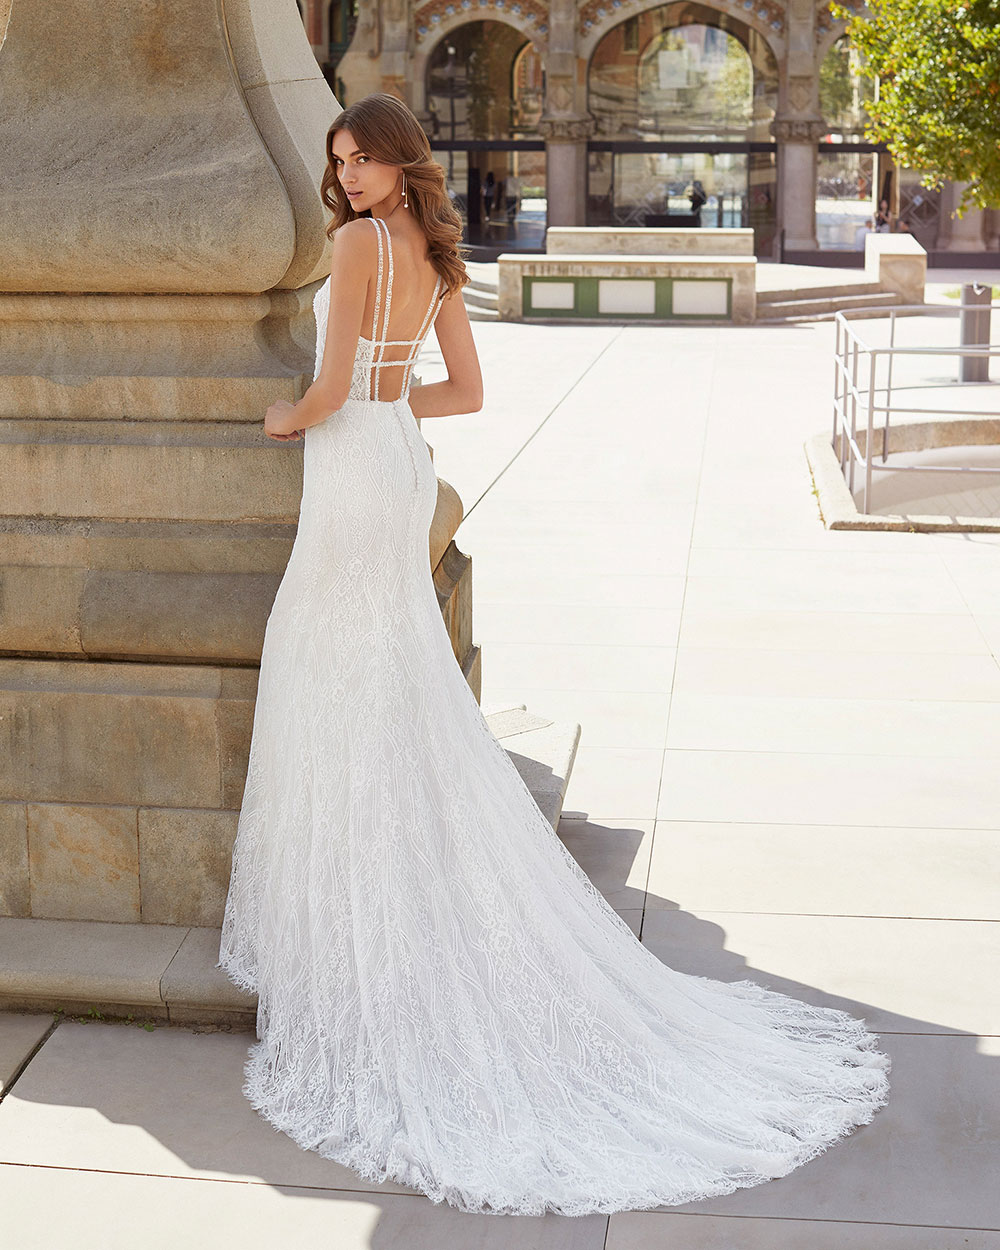 Luna Novias - Found at Bridal Connection San Antonio